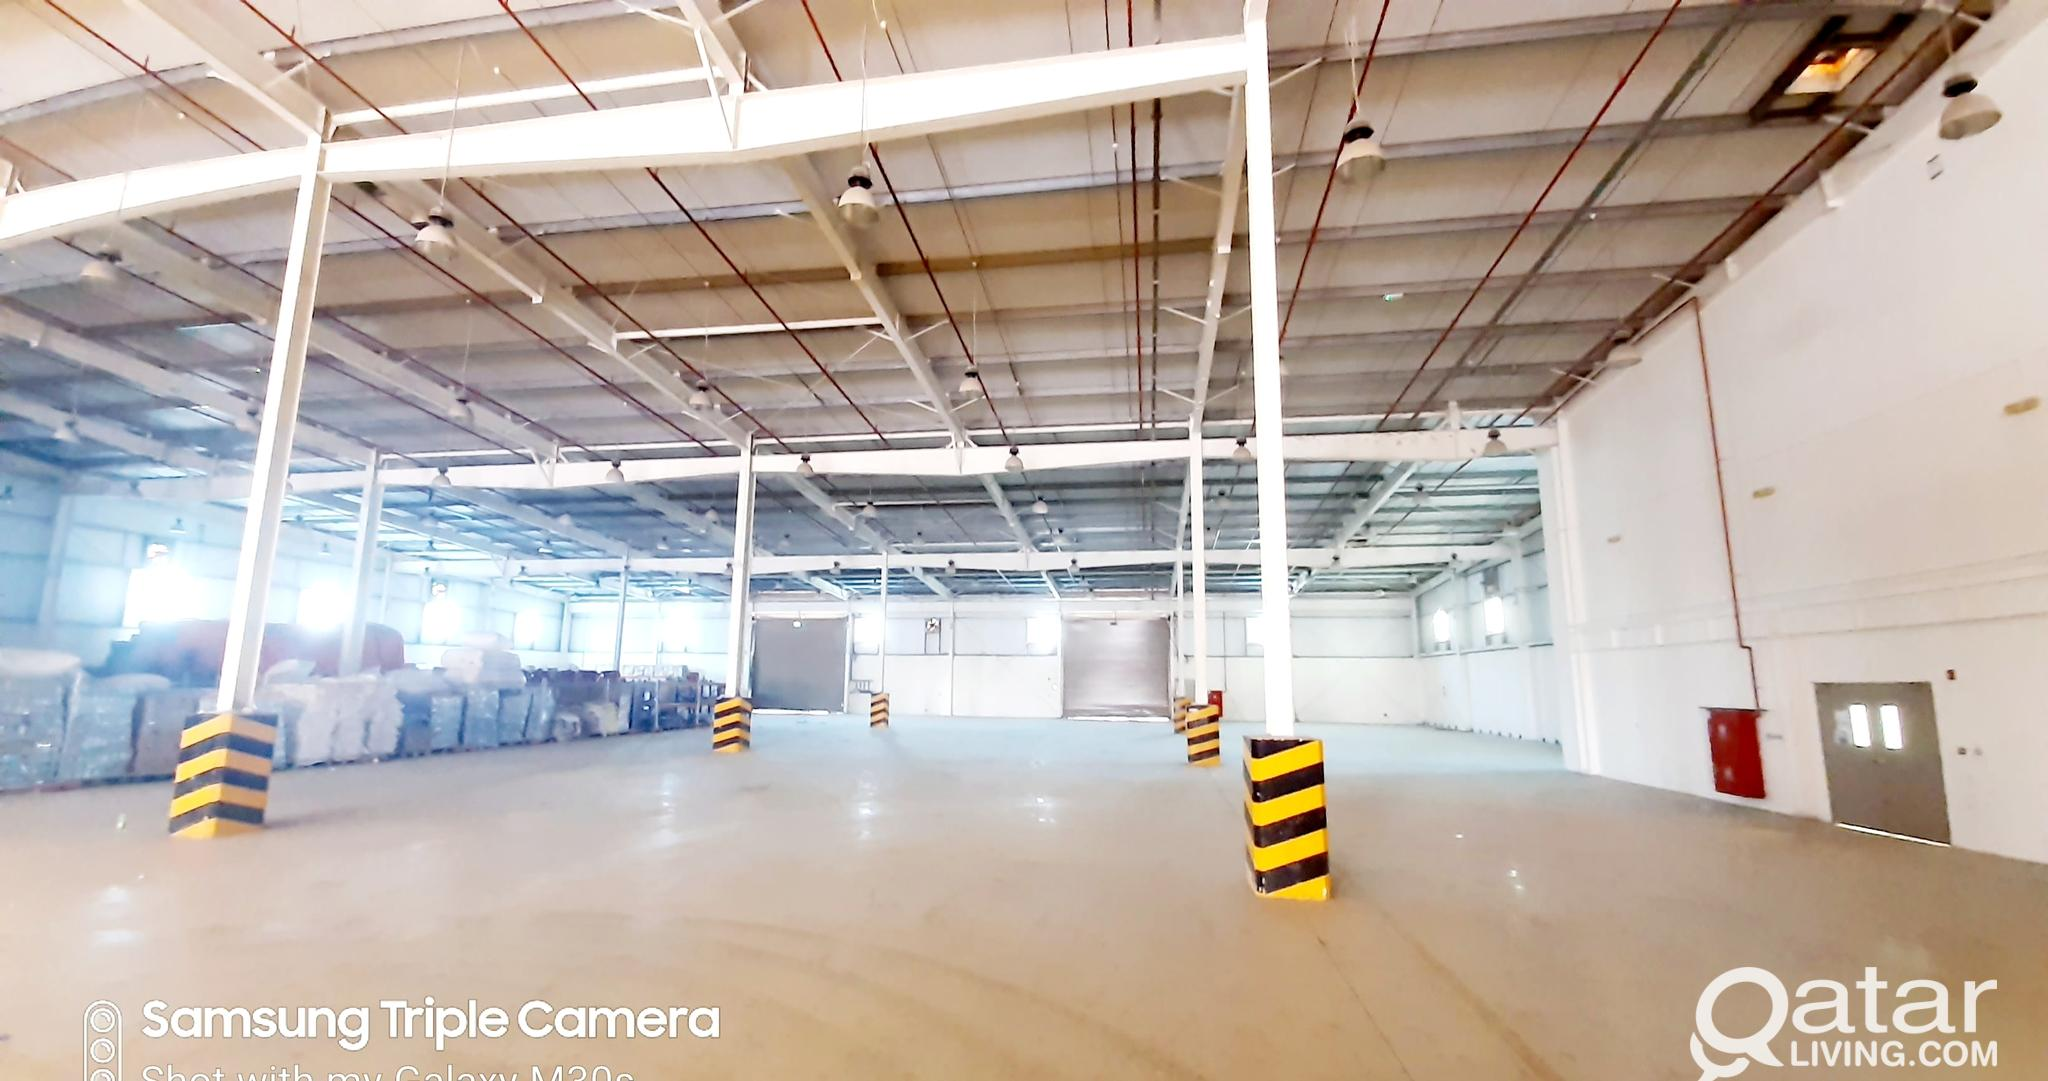 400 SQM STORAGE SPACE FOR RENT IN NEW INDUSTRIAL A